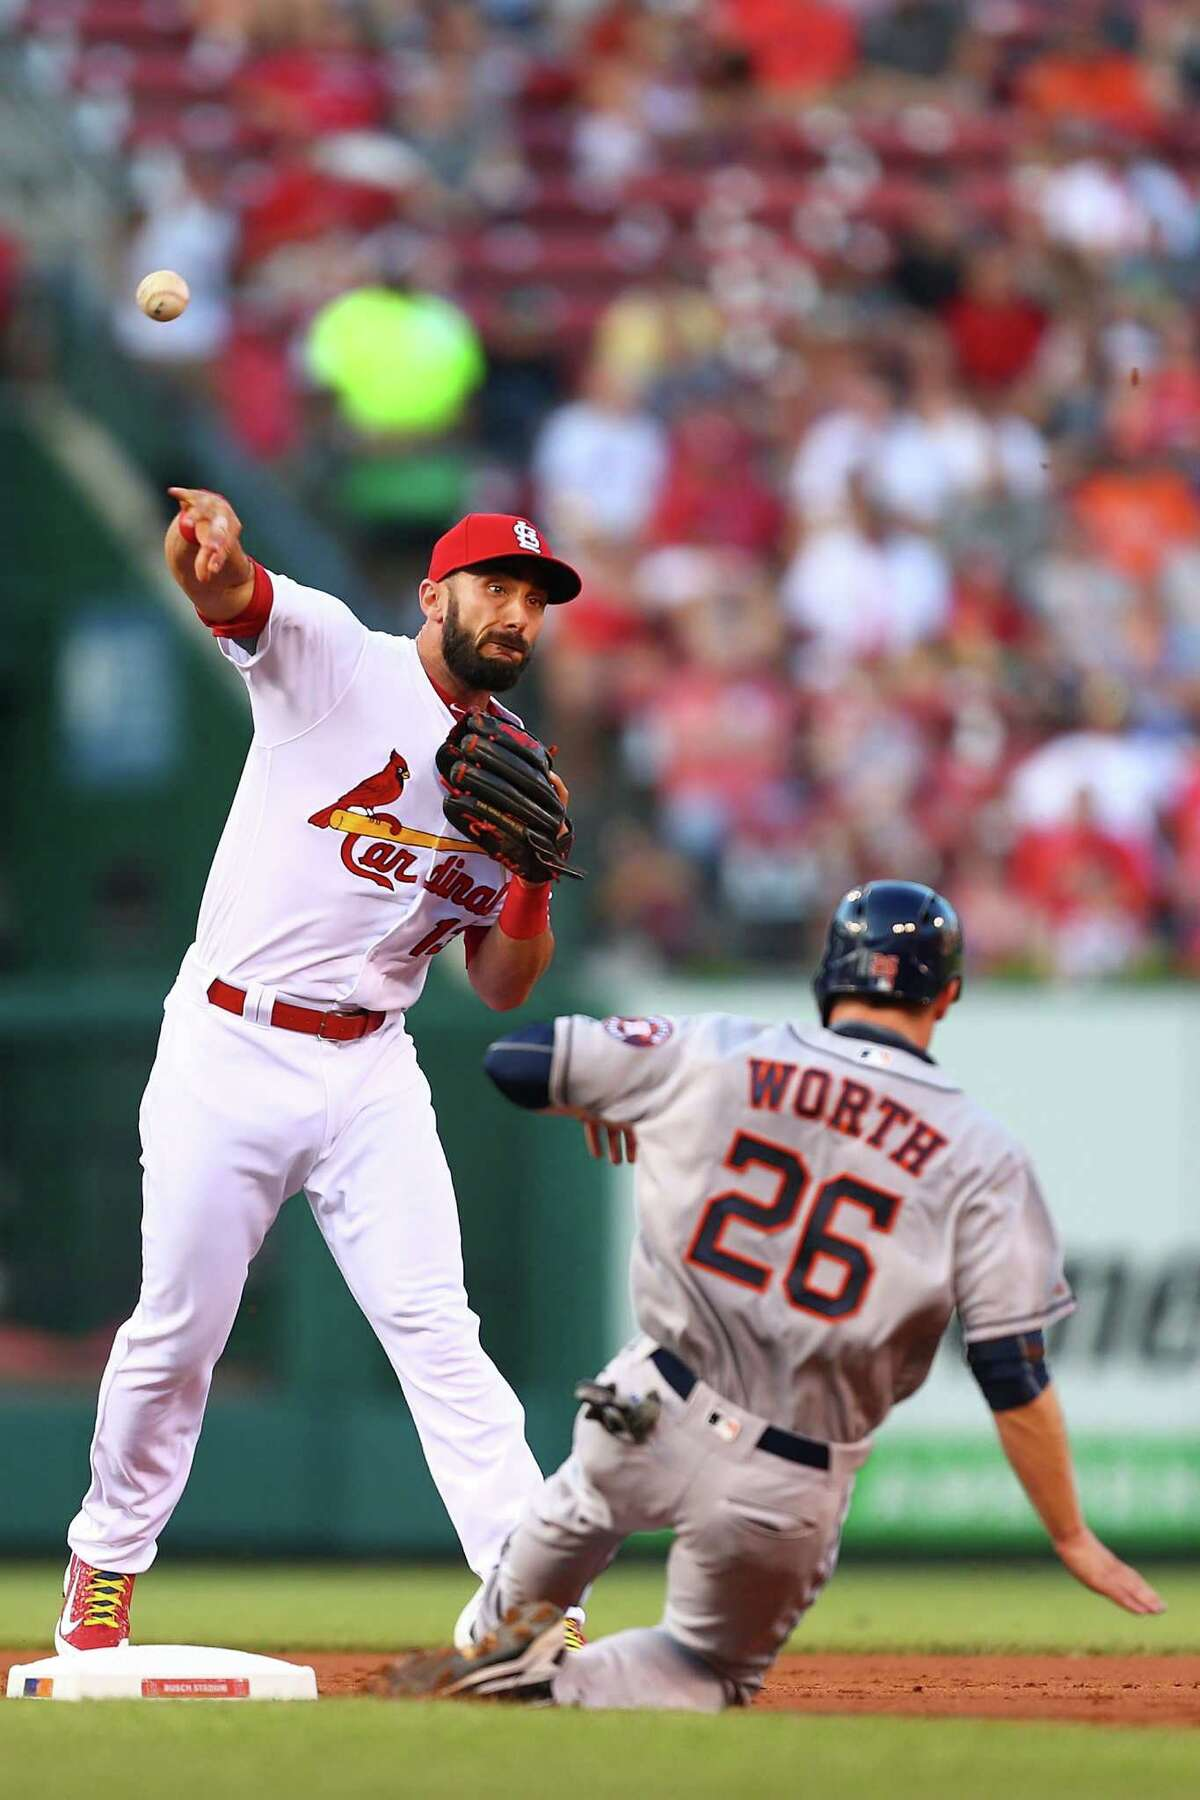 ST. LOUIS, MO - JUNE 14: Matt Carpenter #13 of the St. Louis Cardinals turns a double play over Danny Worth #26 of the Houston Astros in the first inning at Busch Stadium on June 14, 2016 in St. Louis, Missouri.